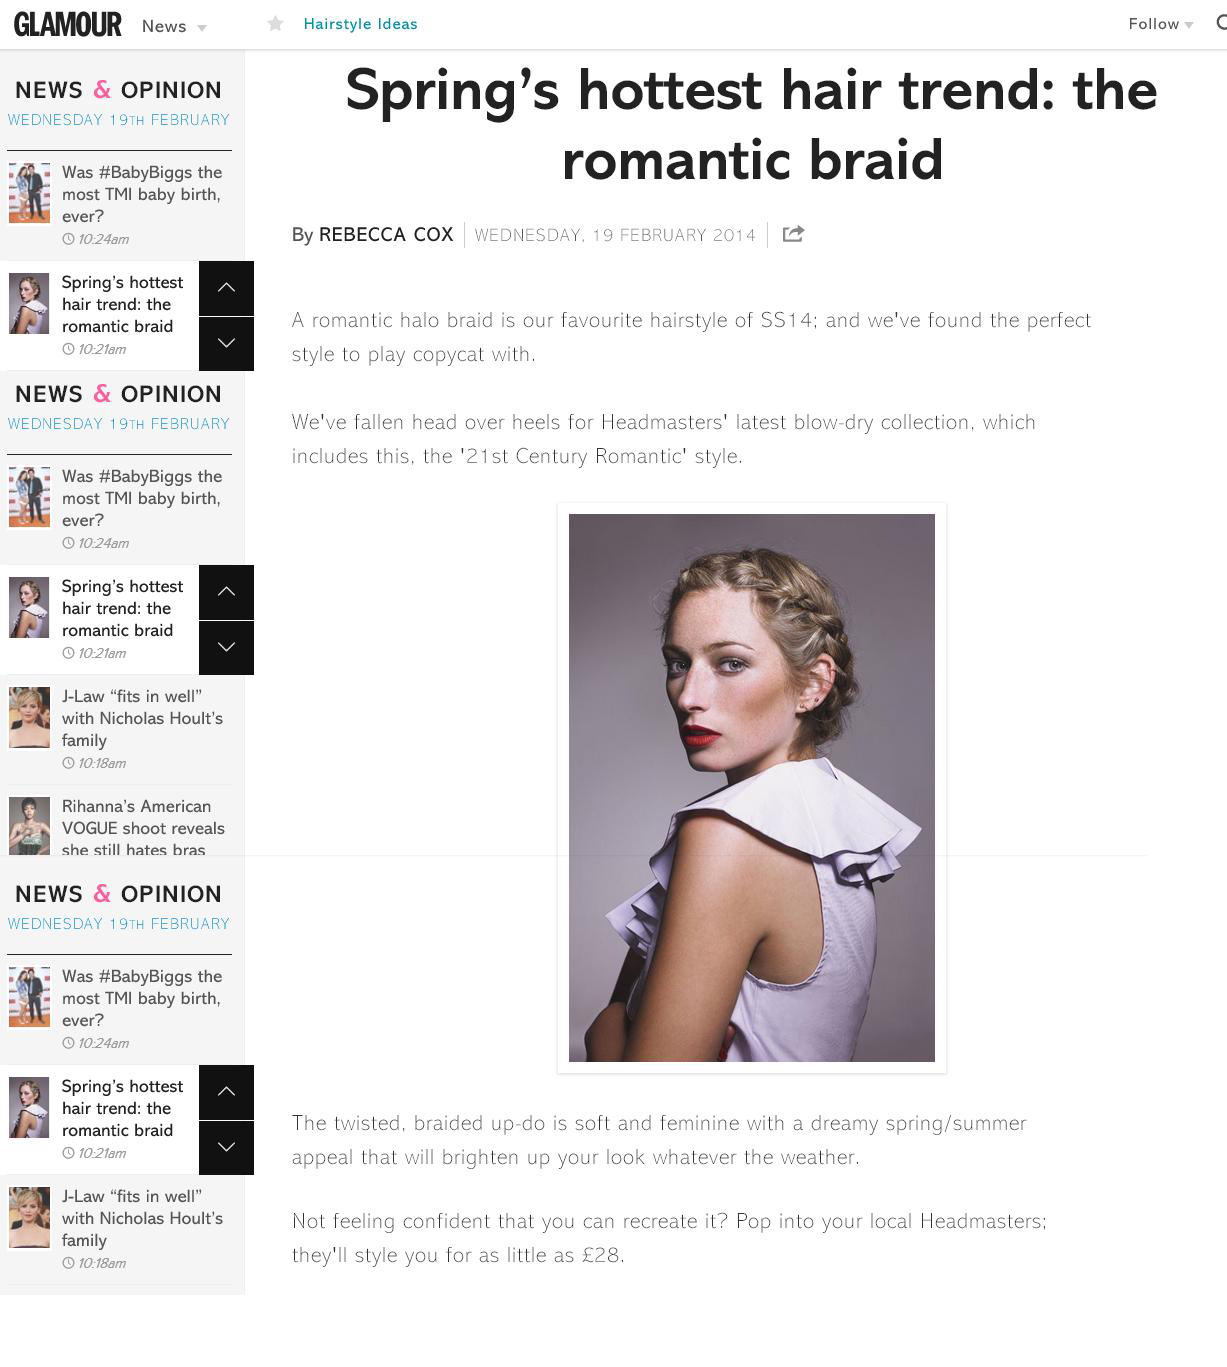 Glamour online - Spring's hottest hair trend featuring the 21st Century Romantic